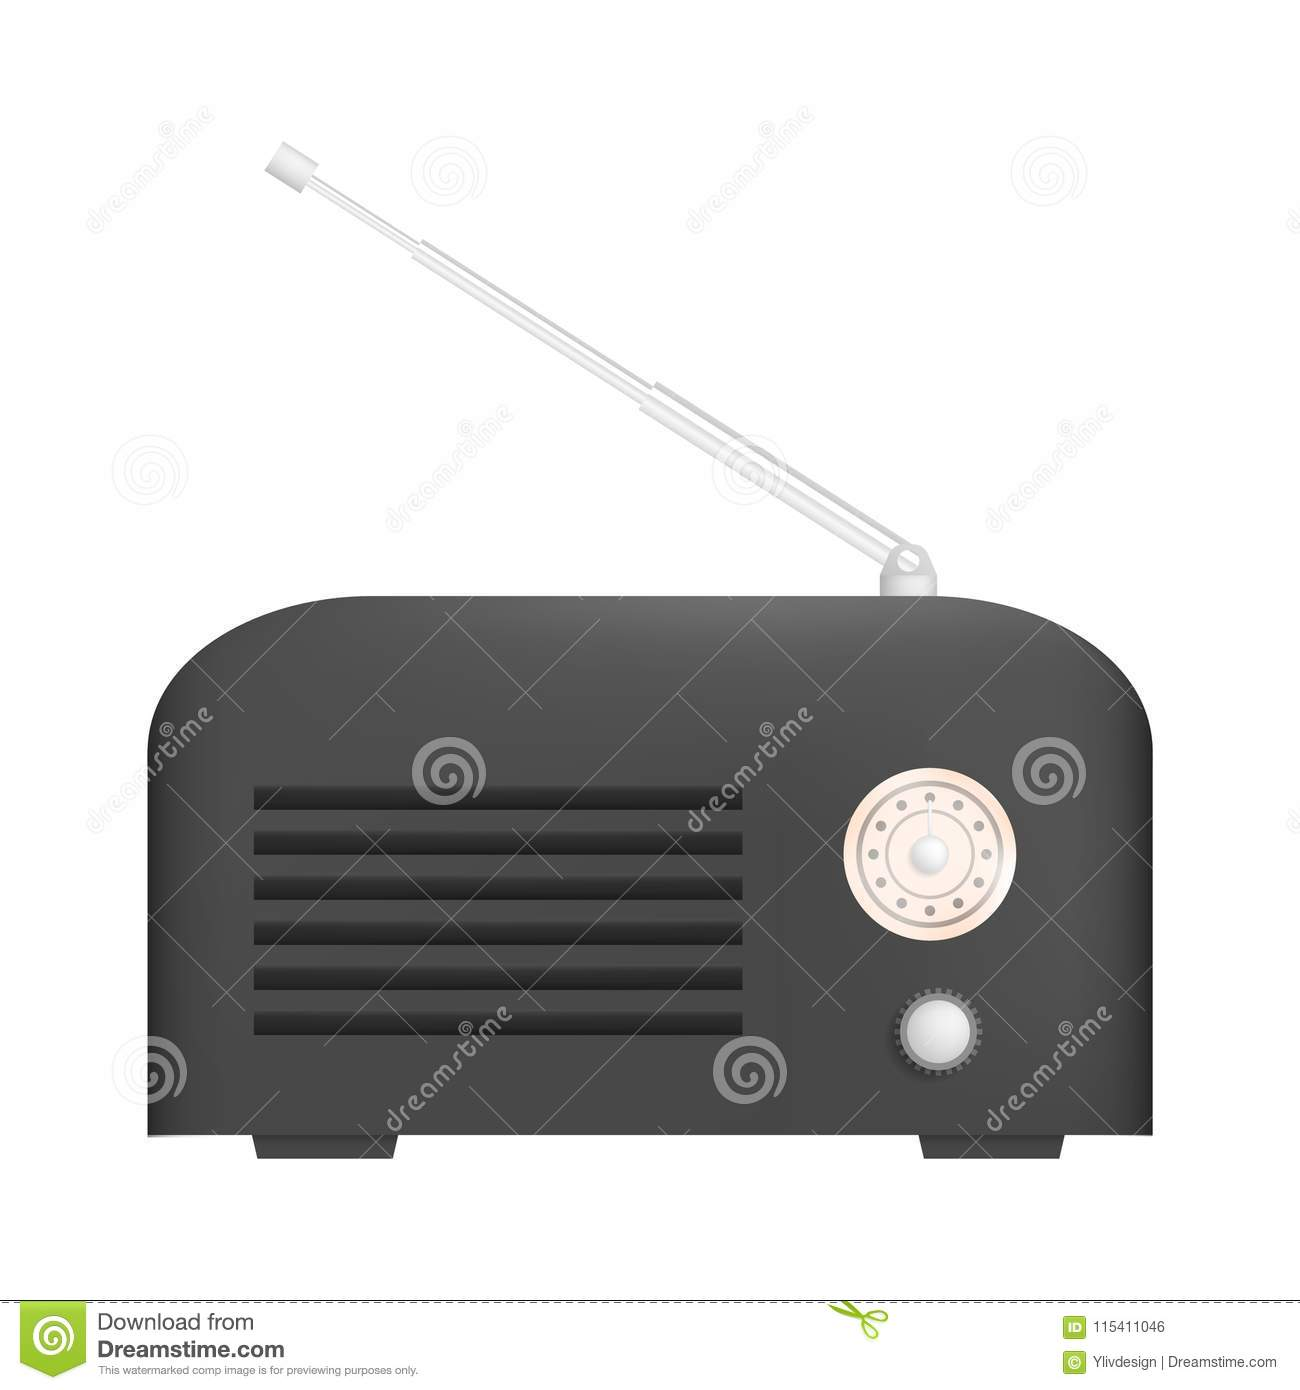 Background of hand tuning in to a radio station vector | free download.